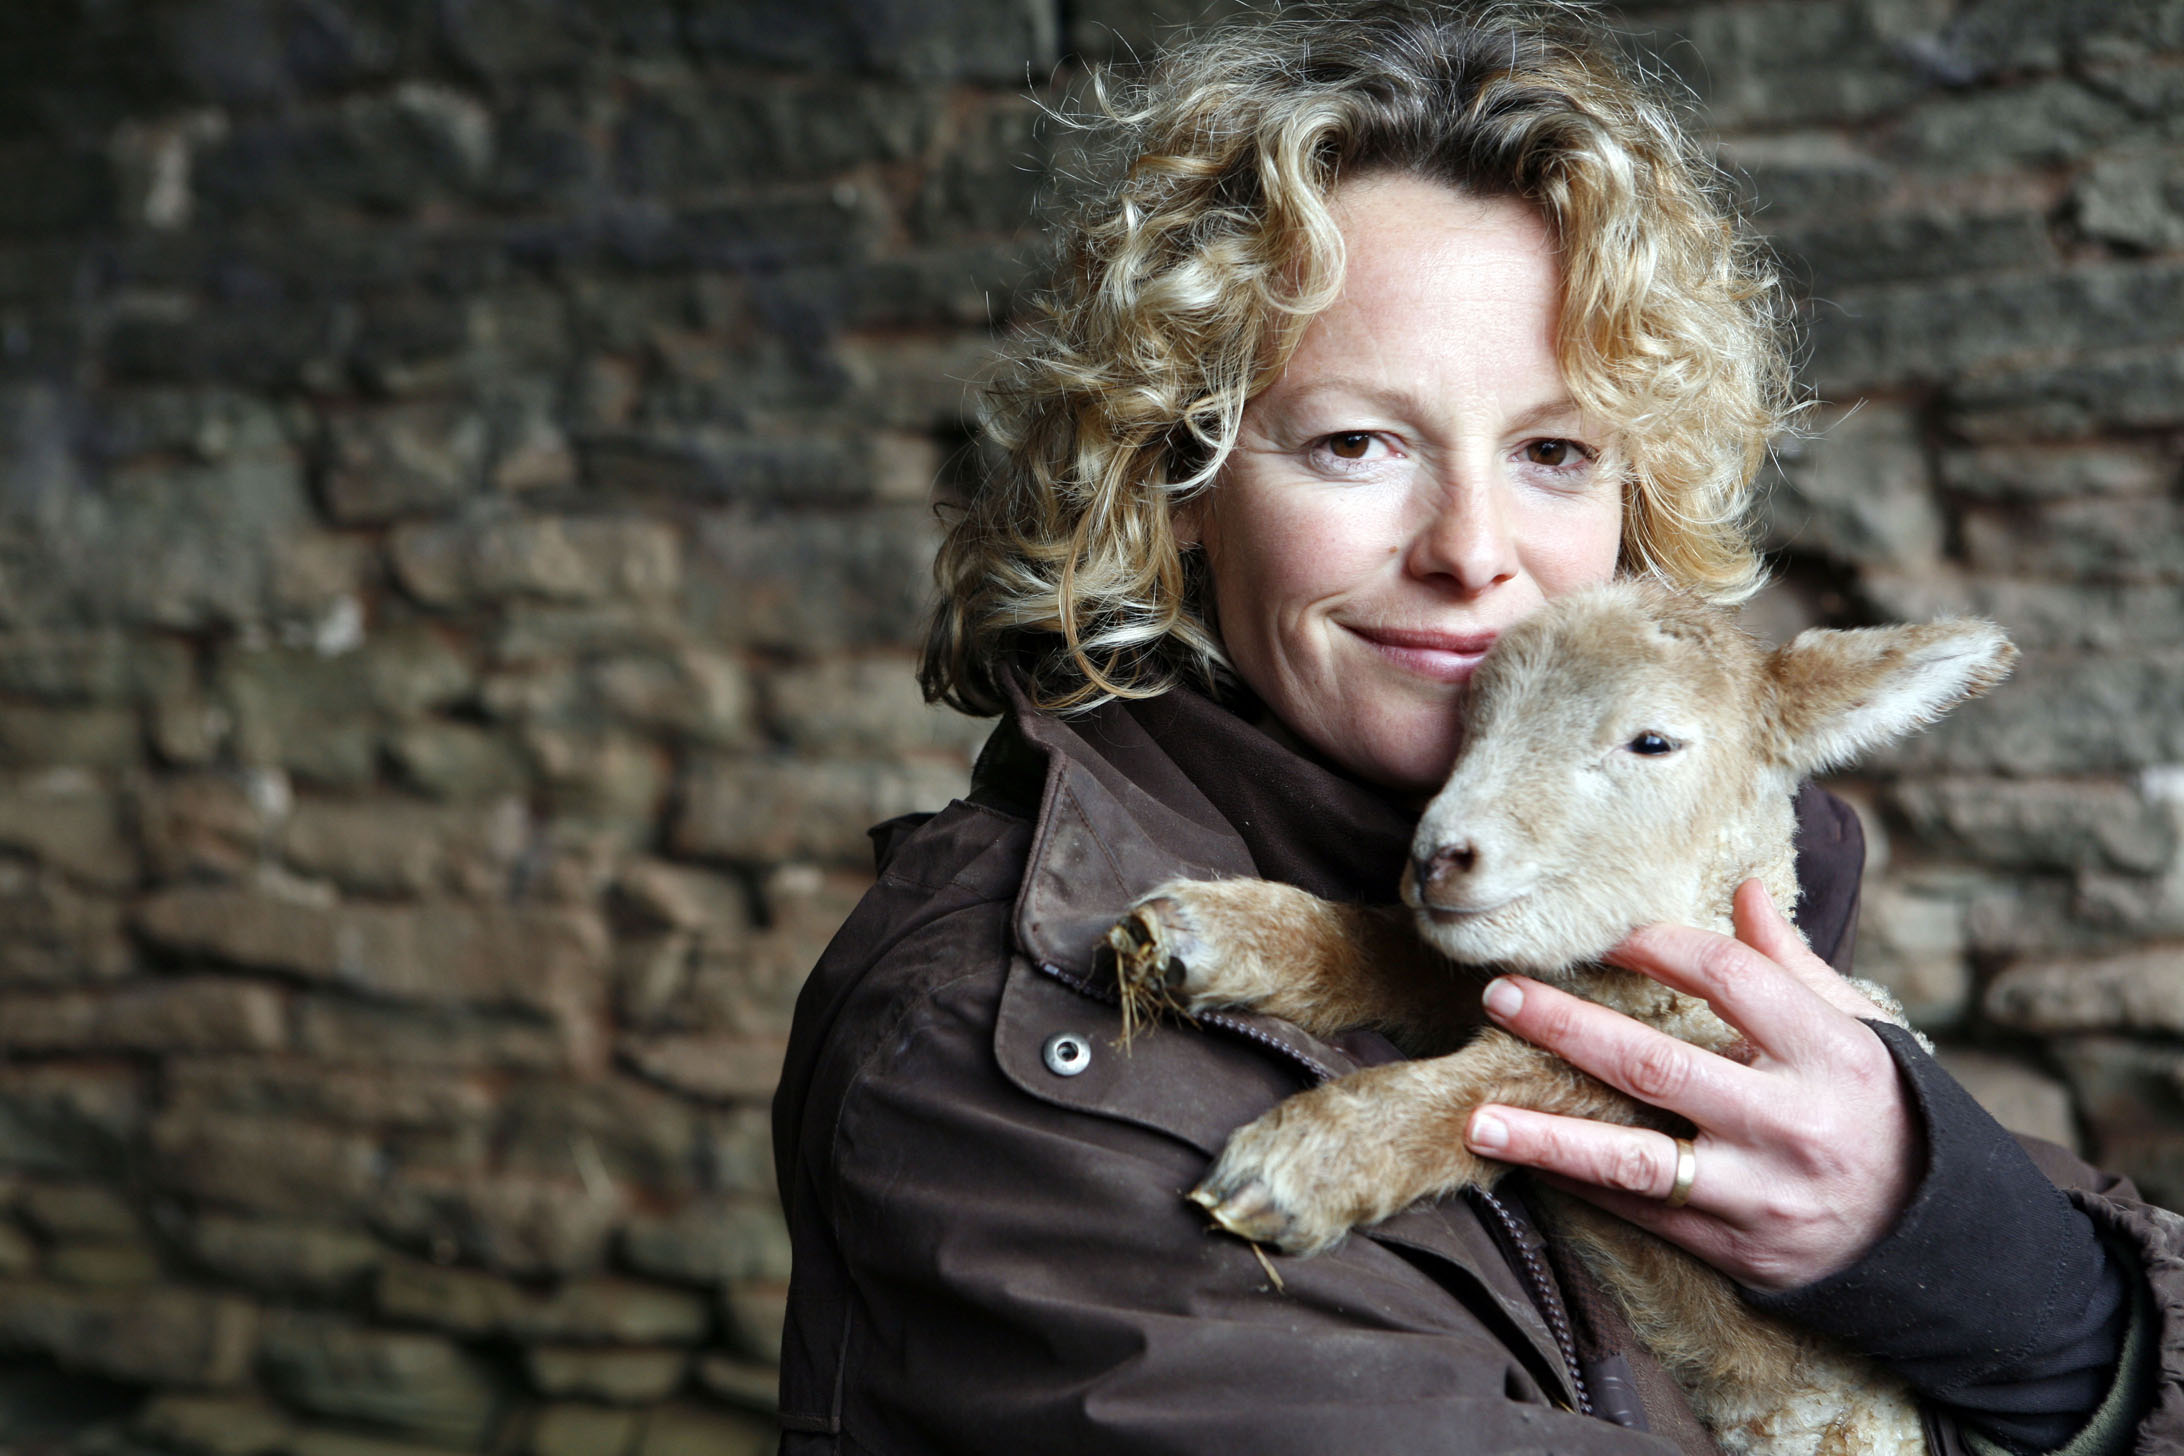 Lambing Live's Kate Humble: 'I don't want to sob!'